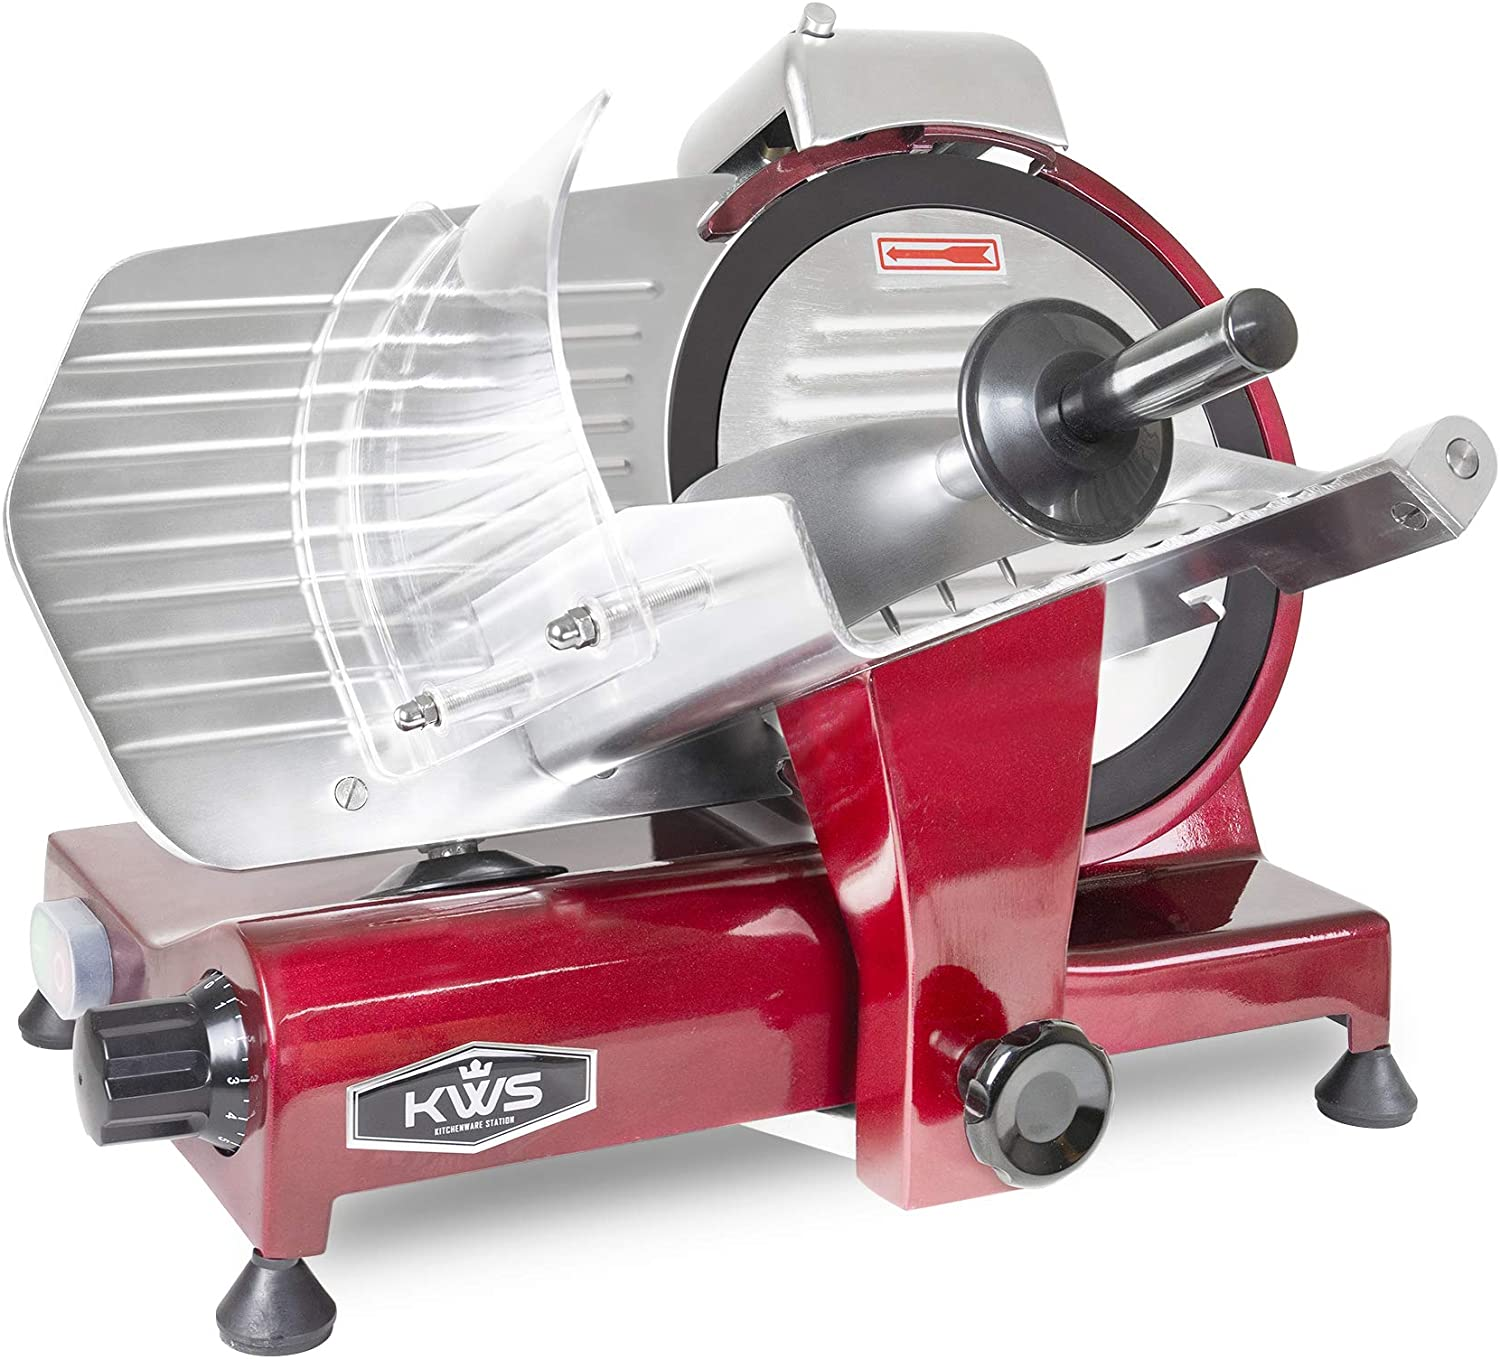 KWS Soldering MS-10XT Premium 320W Electric Meat Red wit 10-Inch Slicer Tulsa Mall in